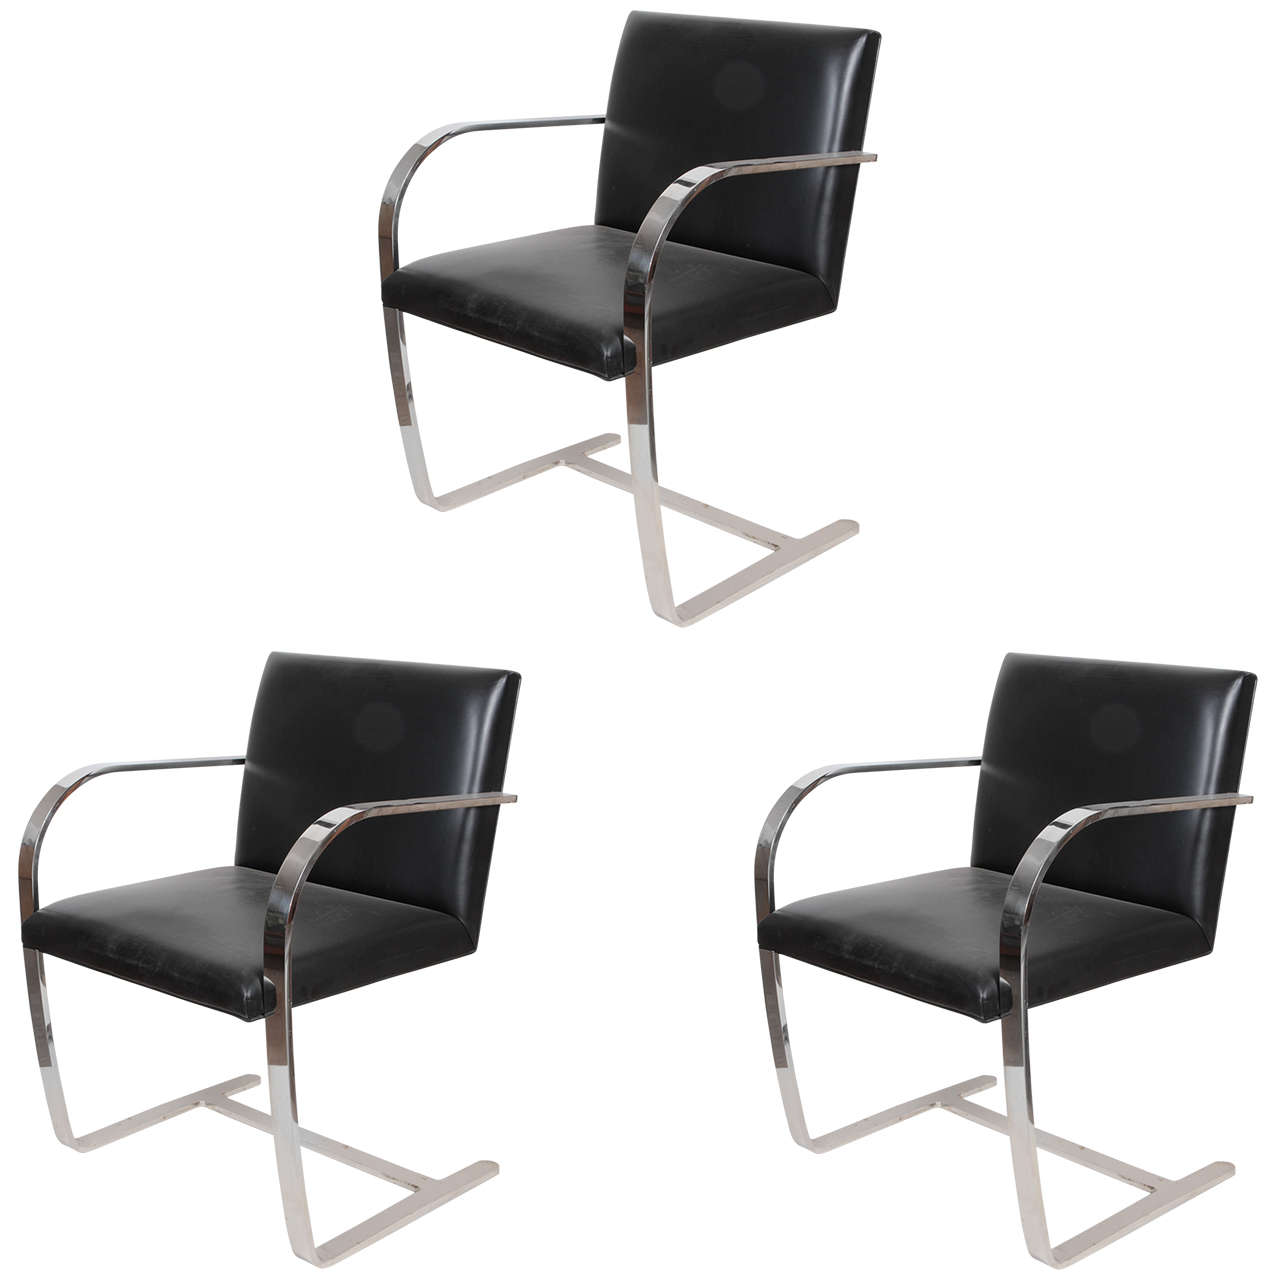 Mies van der rohe chair - Mies Van Der Rohe Brno Chairs For Knoll 1